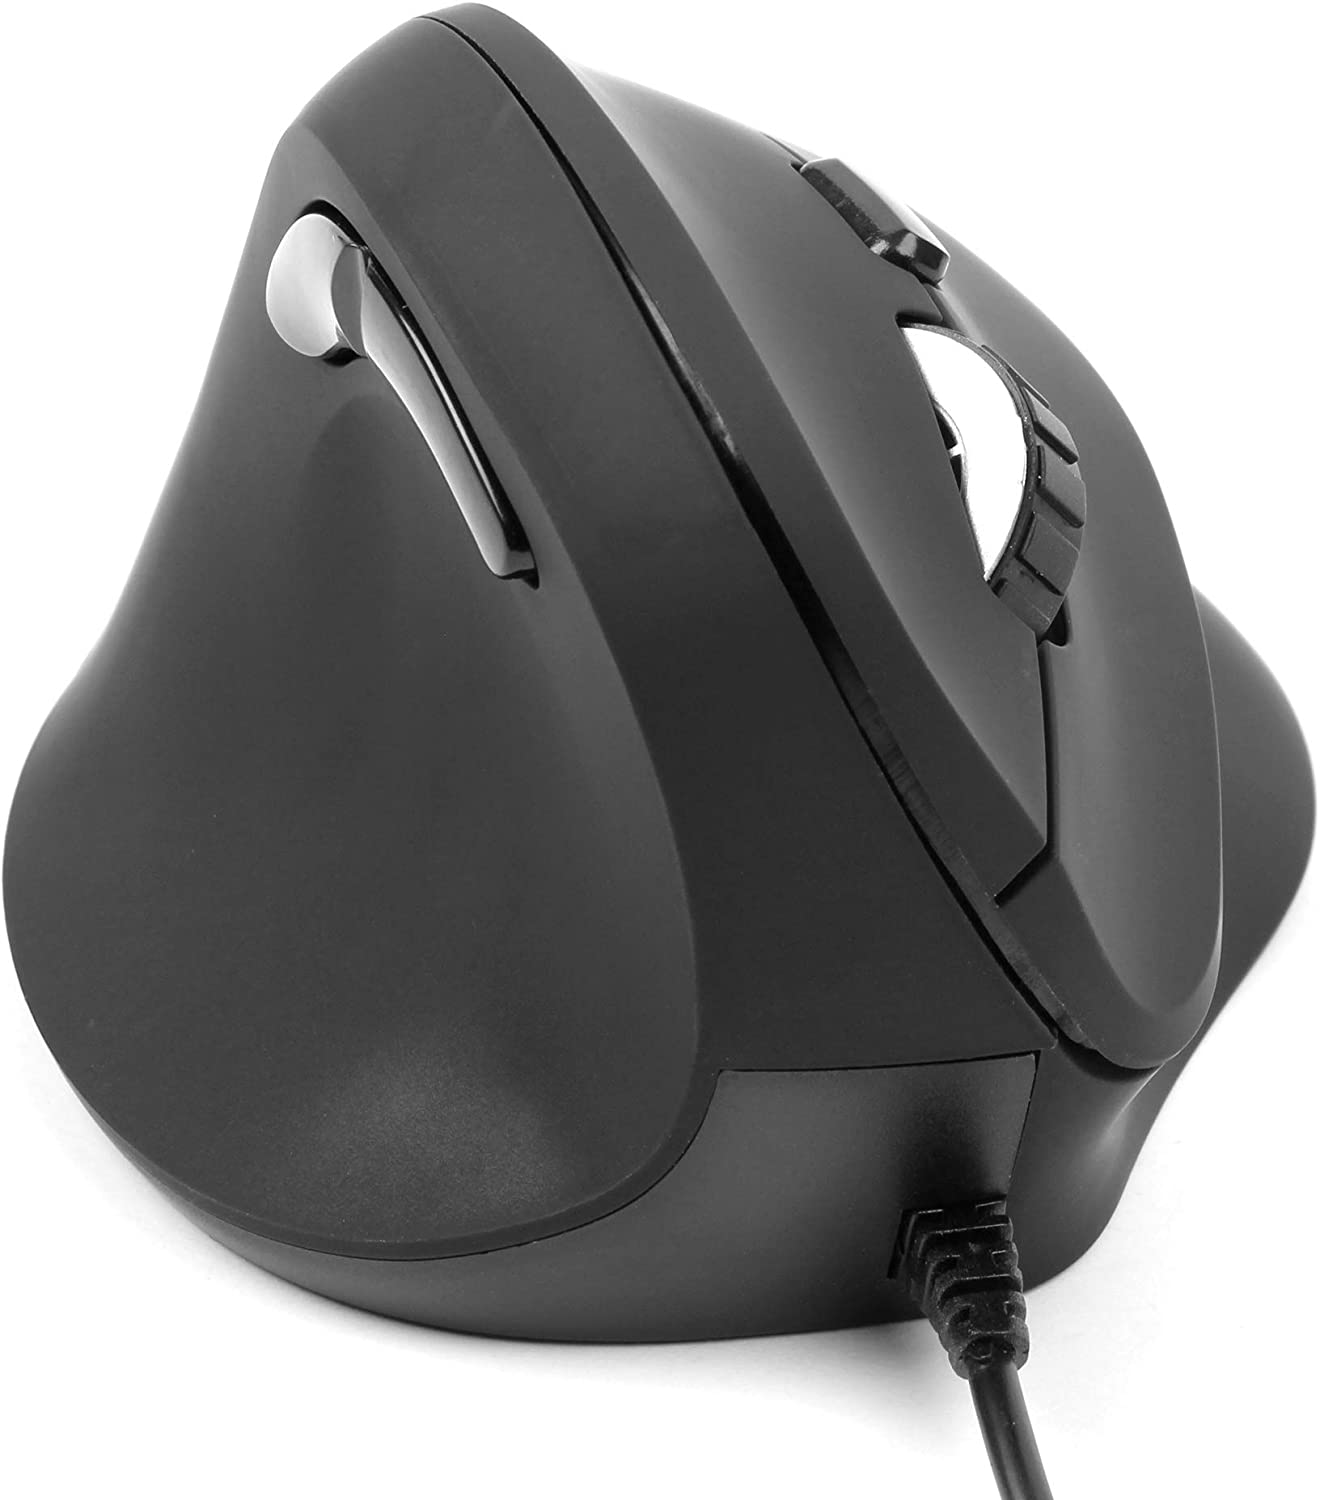 Compatible with HP 14-ac126na DURAGADGET Wired Left-Handed Ergonomic Vertical USB Mouse Black with Browser Buttons